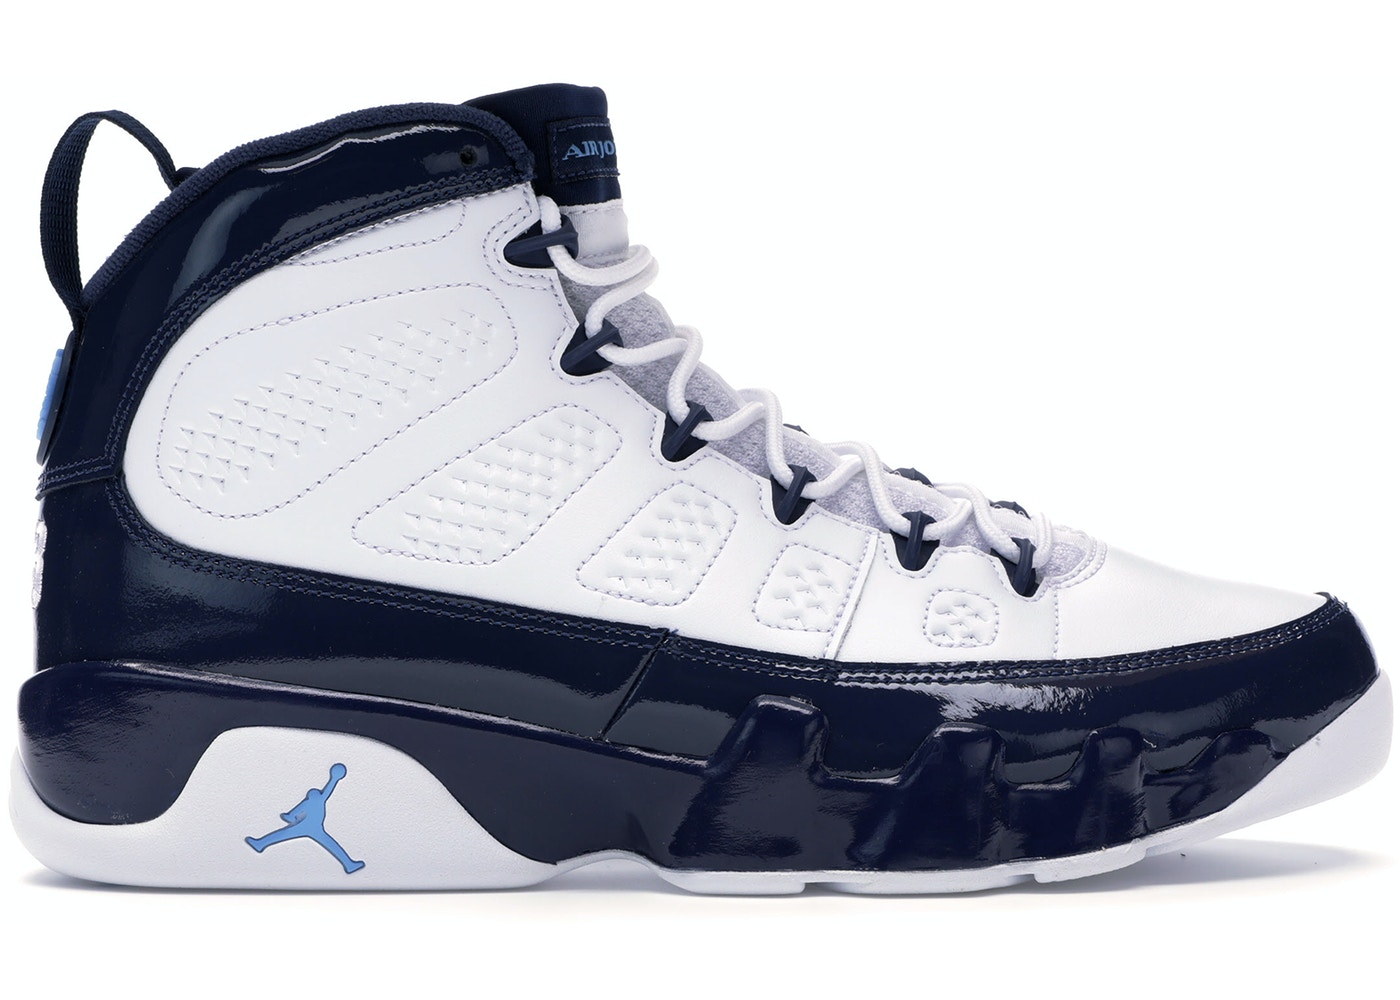 outlet store 88db1 4e58e Air Jordan 9 Shoes - Release Date